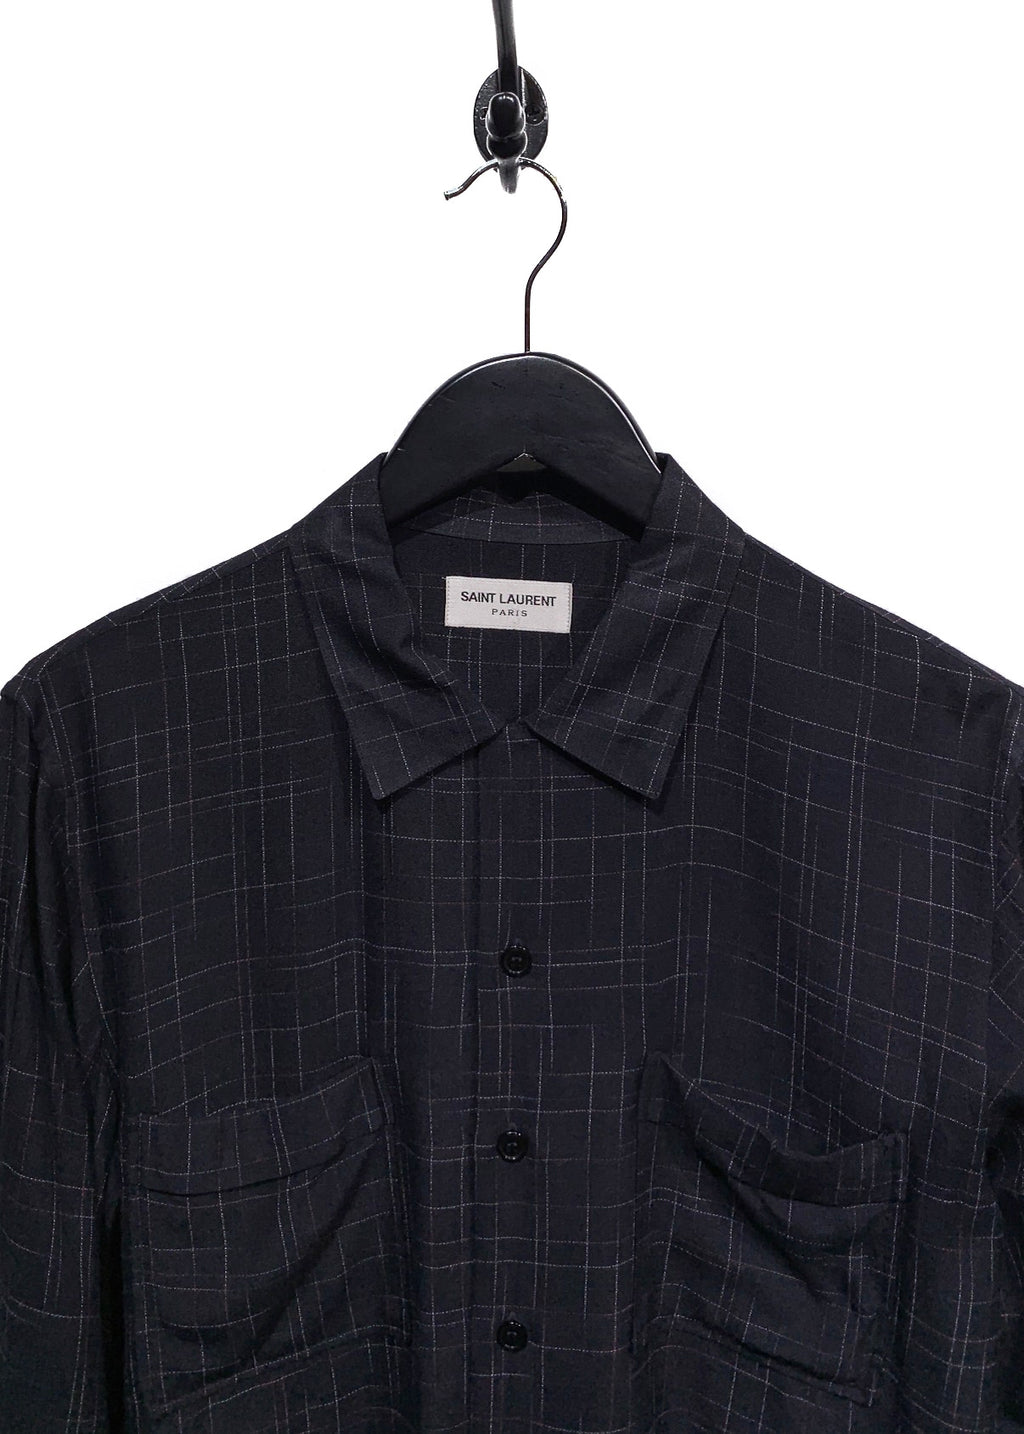 Saint Laurent Black Checkered Pocketed Button Shirt